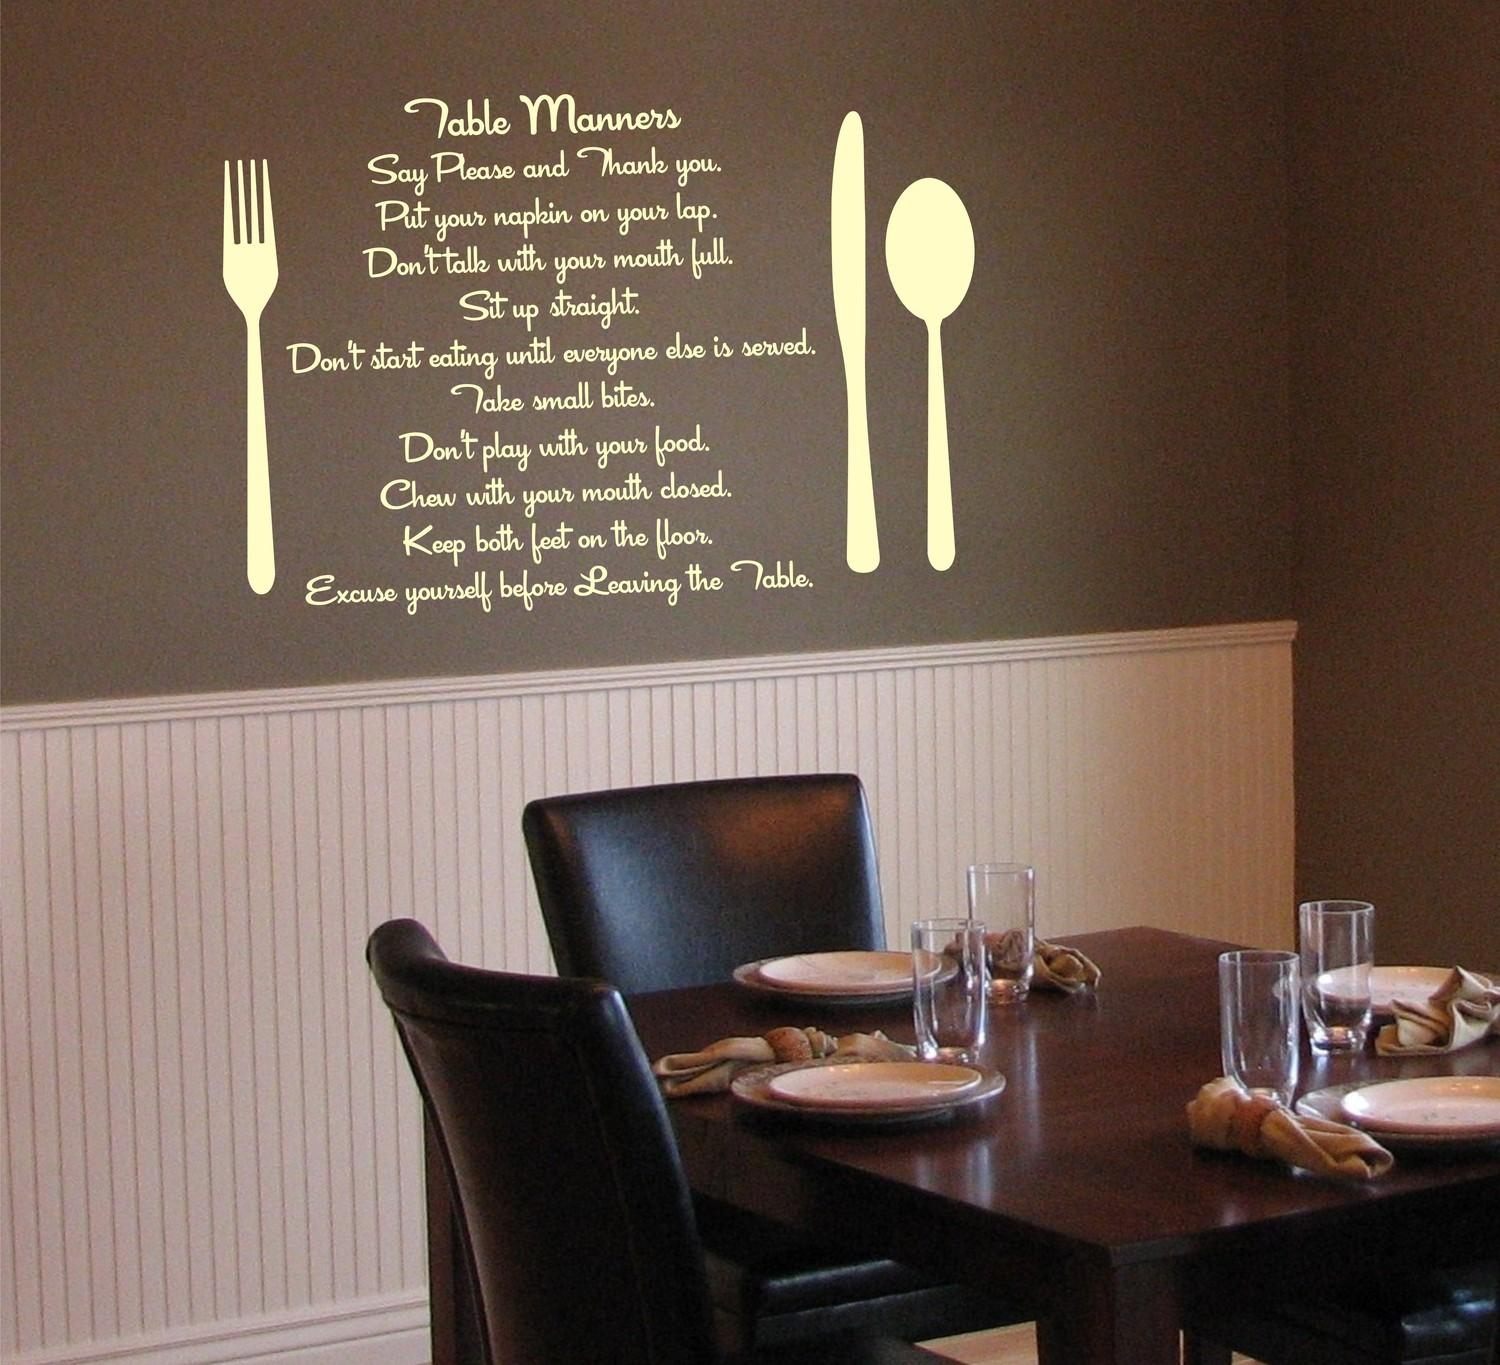 Dining Room Vinyl Wall Decals » Dining Room Decor Ideas And Throughout As For Me And My House Vinyl Wall Art (View 9 of 20)